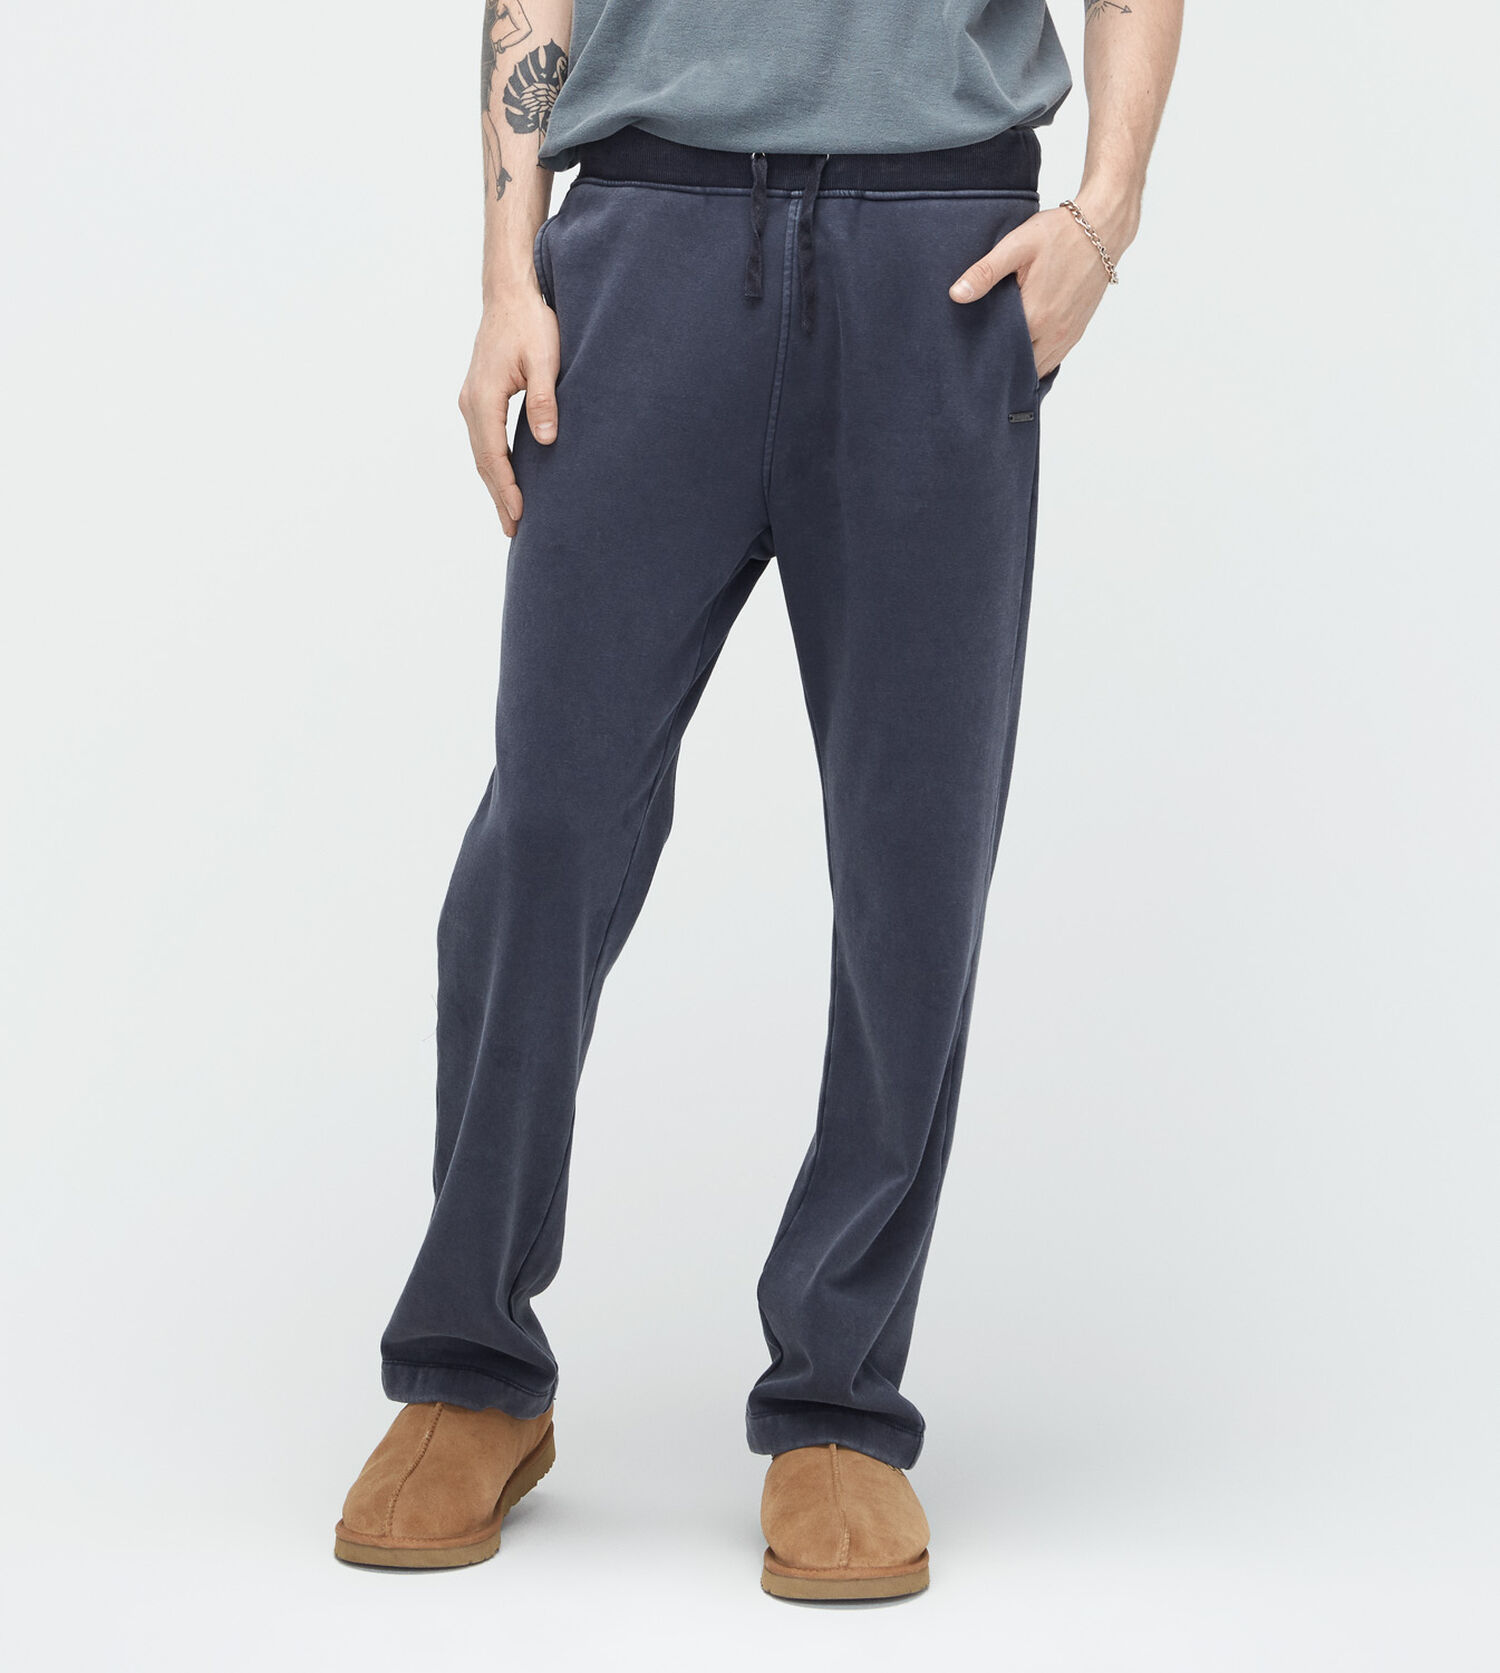 wyatt single guys Prana men's wyatt pant the only aspect of these that may be somewhat bad for back pocket users, is they only have a single back pocket on the right butt cheek.